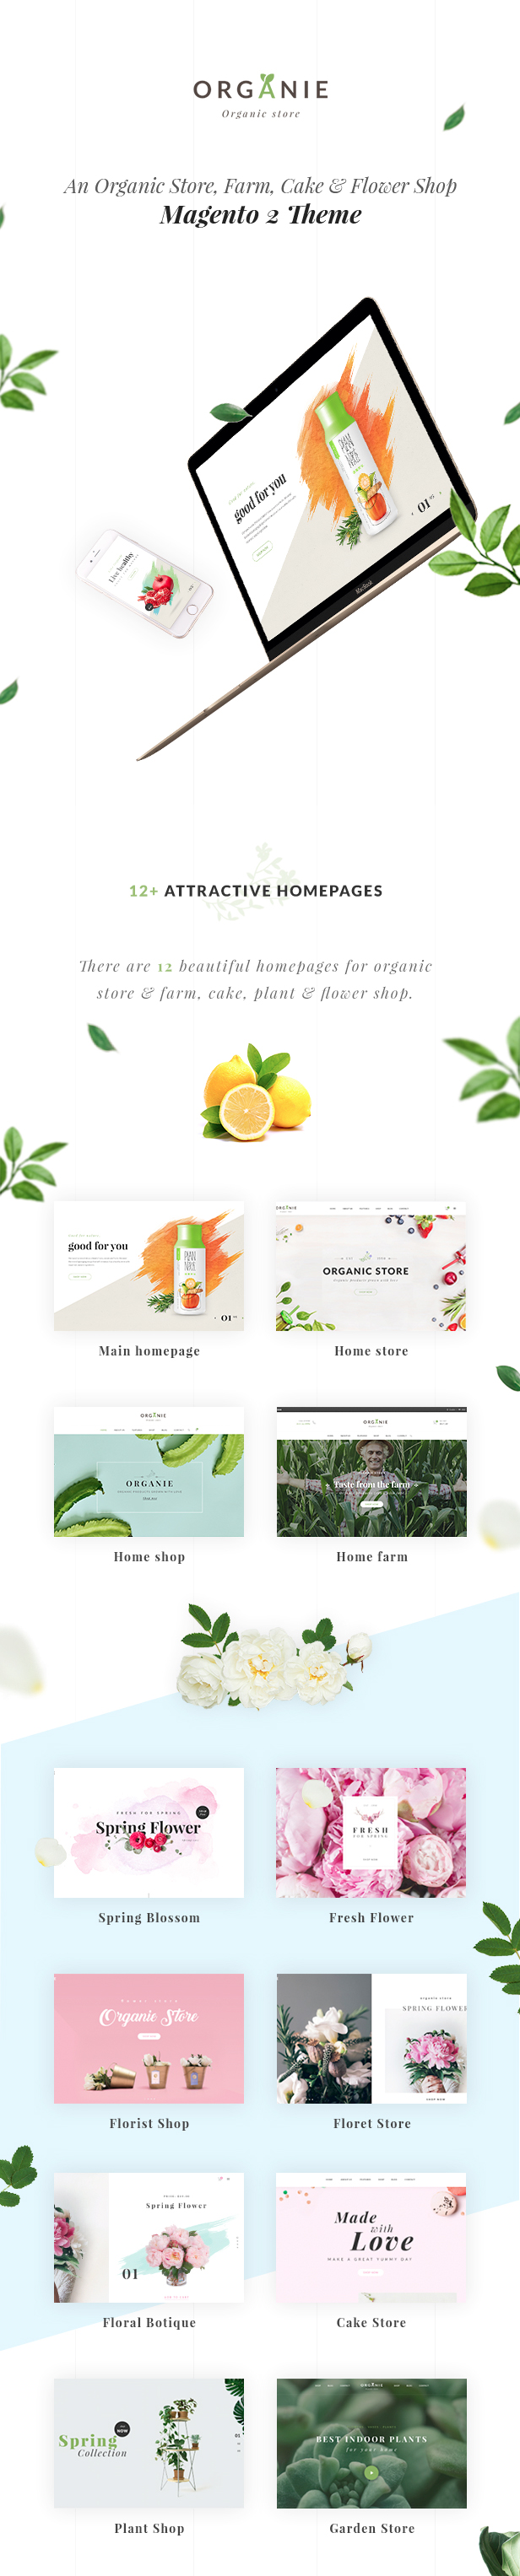 Organie - An Organic Store, Farm, Cake and Flower Shop Magento 2 and 1 Theme - 5